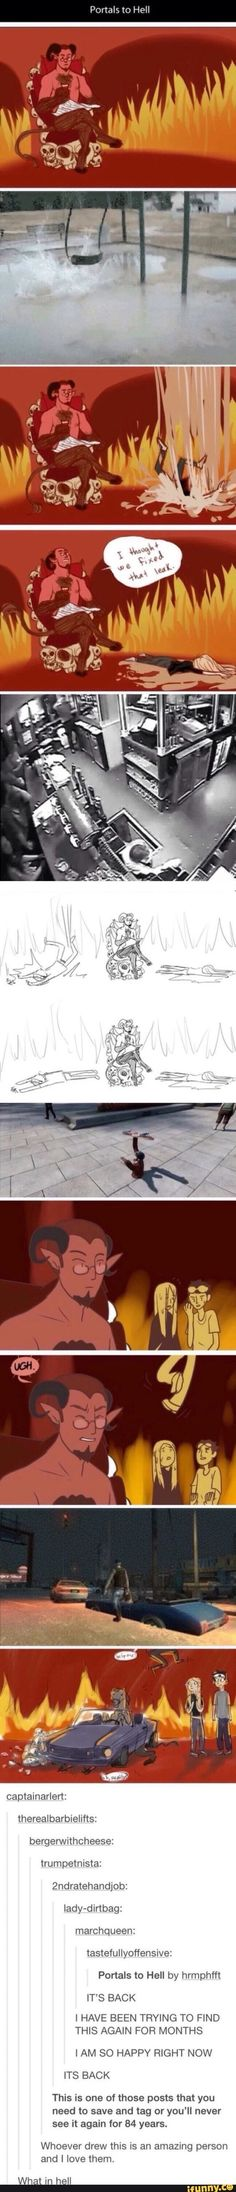 Ideas For Funny Kids Drawings Hilarious Awesome Stupid Funny Memes, Funny Cute, Funny Posts, Really Funny, Hilarious, Funny Stuff, Random Stuff, Funny Kids, Hilarious Pictures